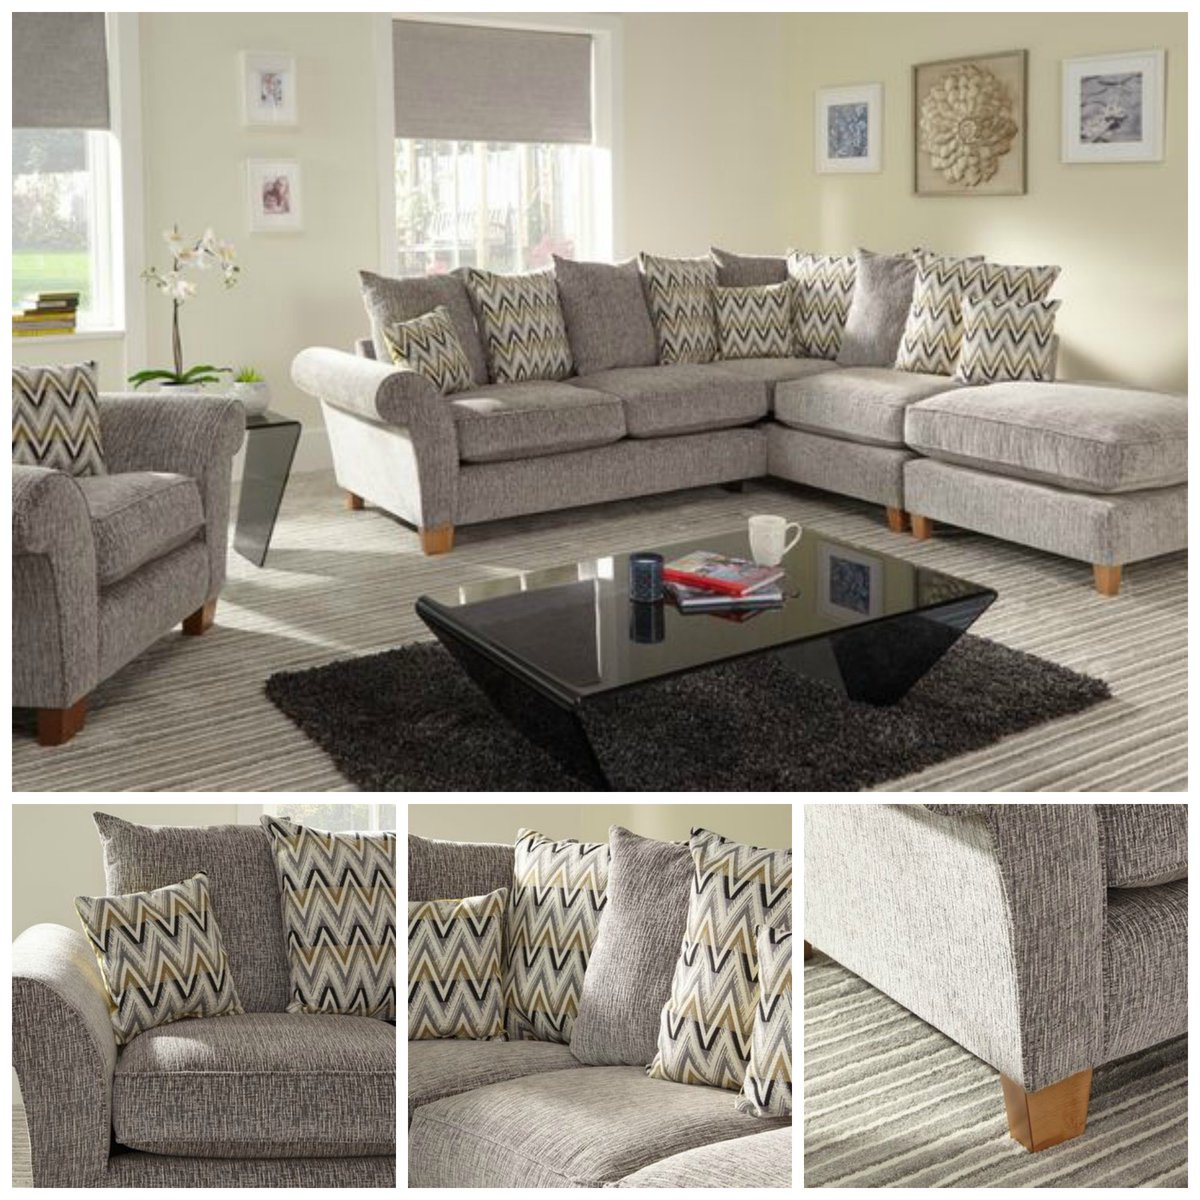 Scs Sofas On Twitter Order The Laguna Sofa Collection Today And We Ll Guarantee It Will Be In Your Home Time For Christmas Https T Co Epjwp8ppss